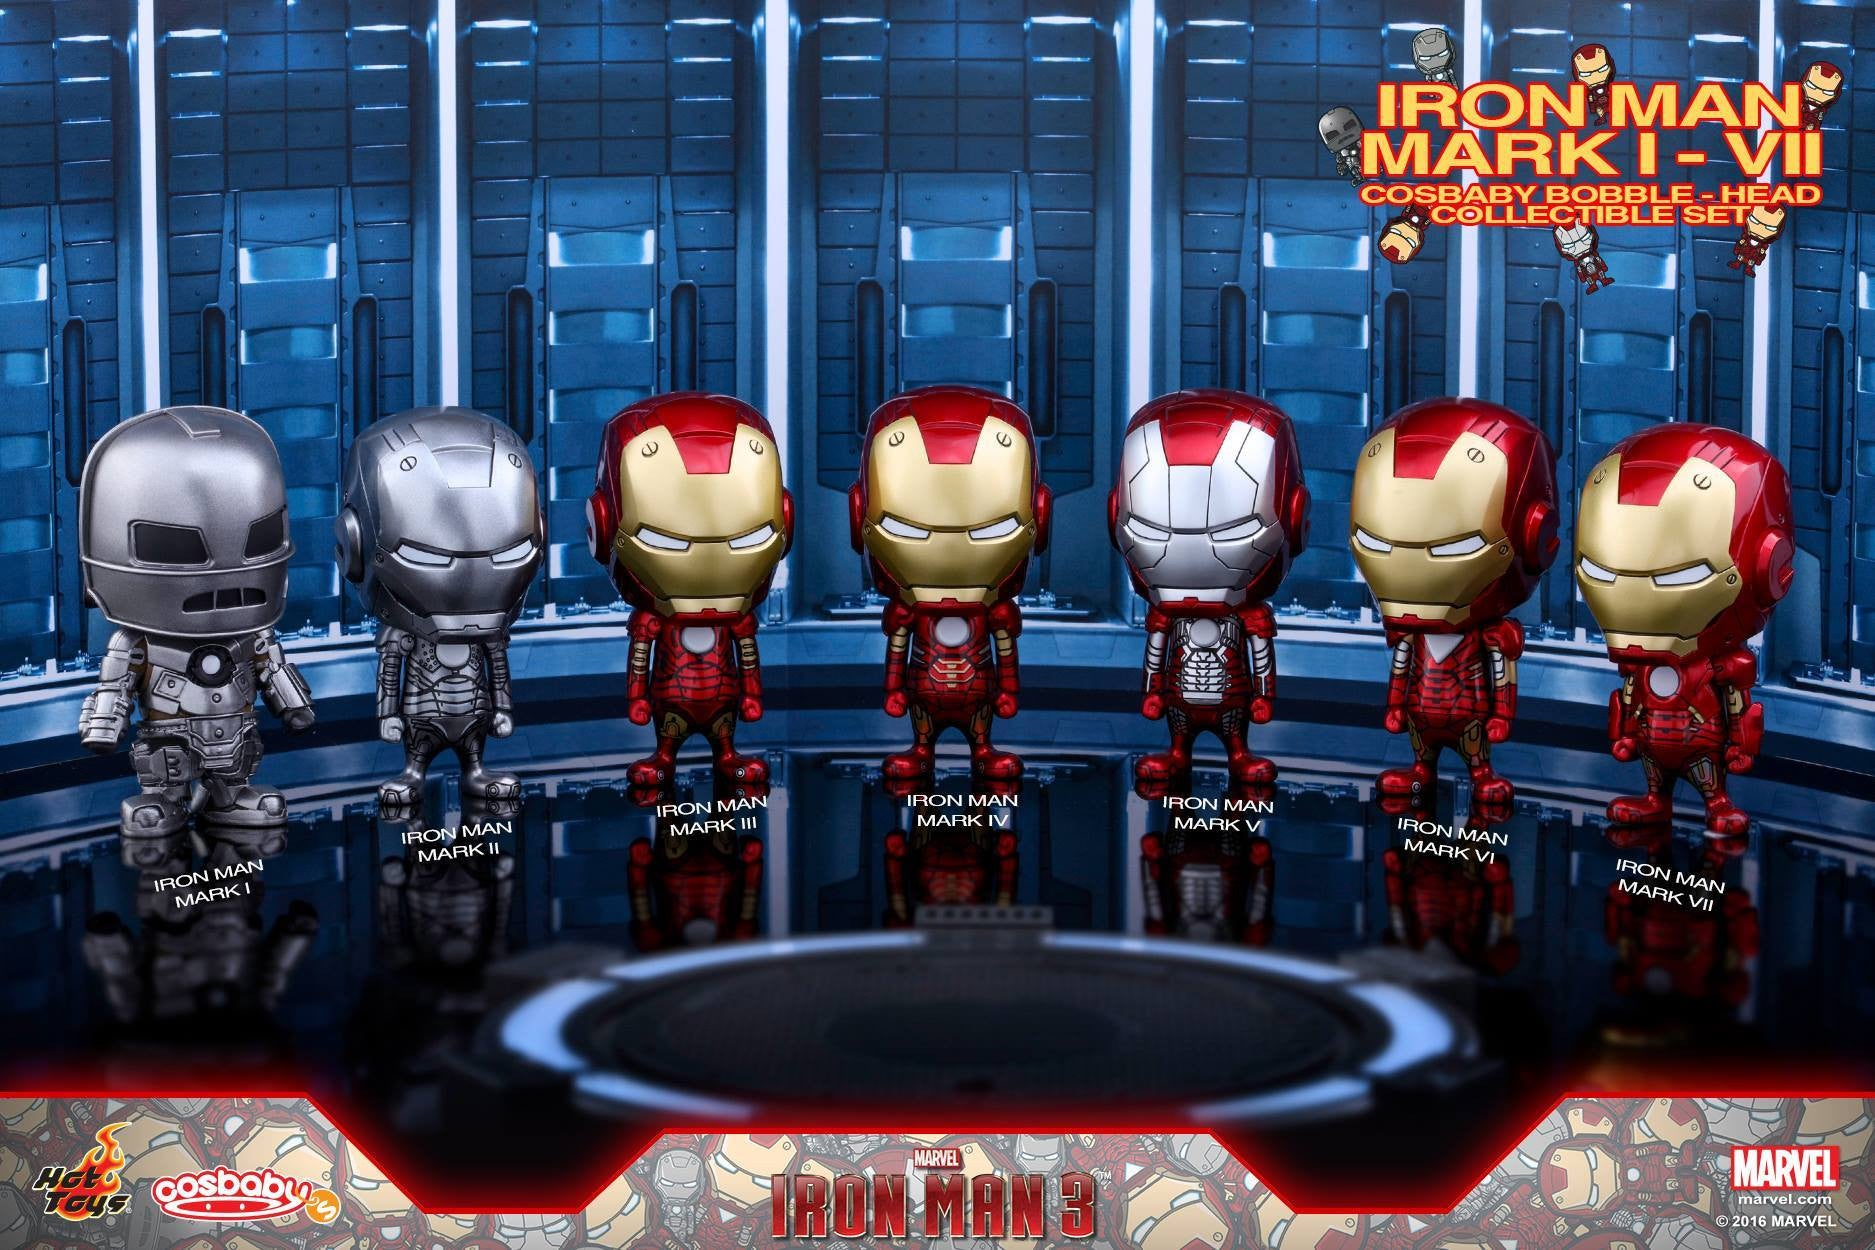 Hot Toys - COSB261-267 - Iron Man 3 - Iron Man Mark I-VII Cosbaby Bobble-Head Series Collectible Set - Marvelous Toys - 1